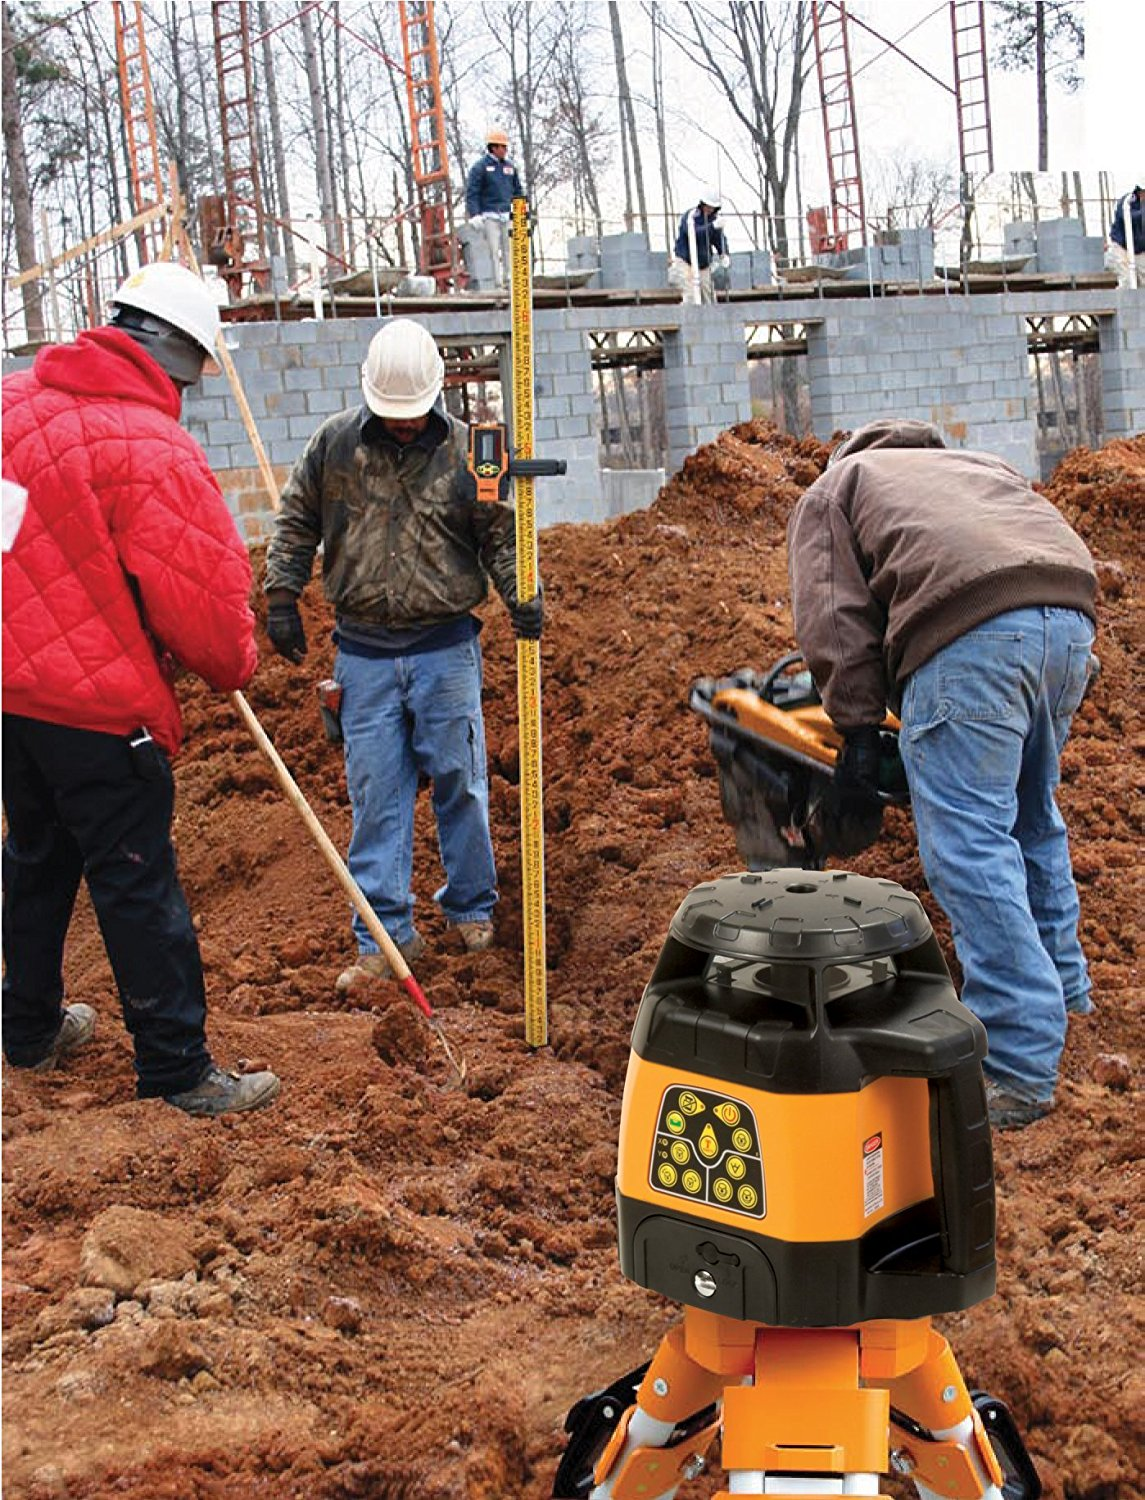 How to Choose a Rotary Laser Level for Outdoor Use?